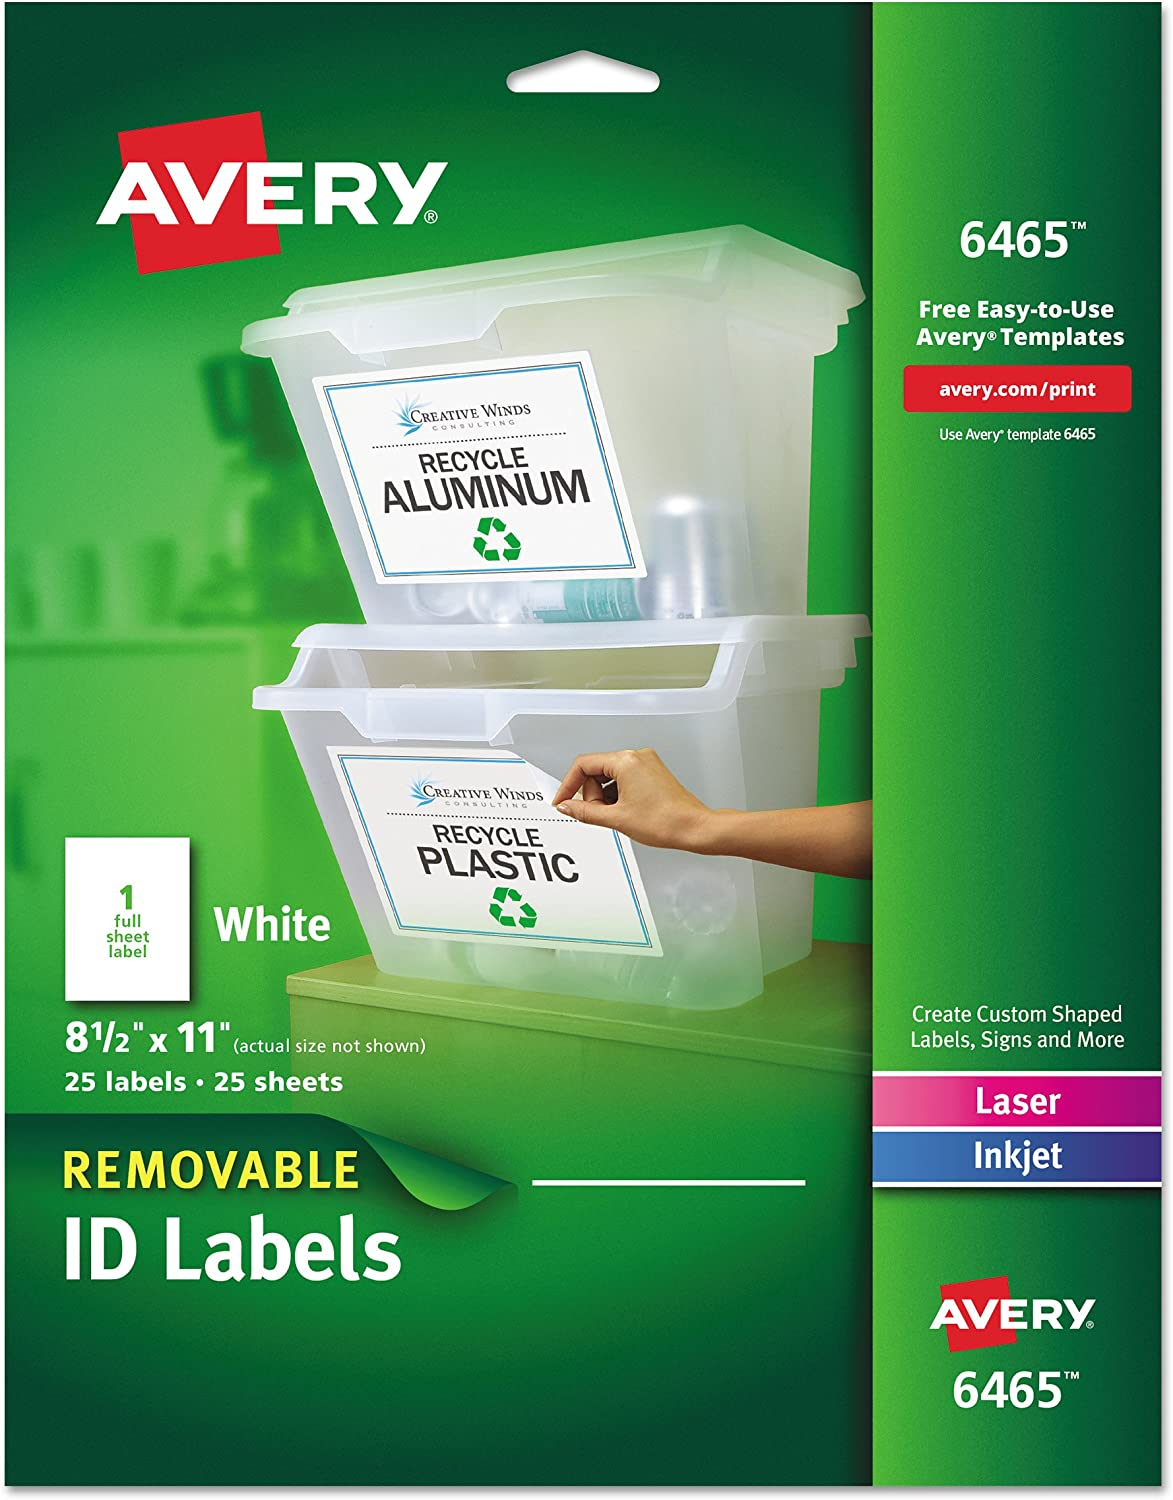 Avery Self-Adhesive Removable Laser Id Labels, White, 8.5 x 11 inches, 25 per Pack (6465) : Id Labels Full Sheet : Office Products